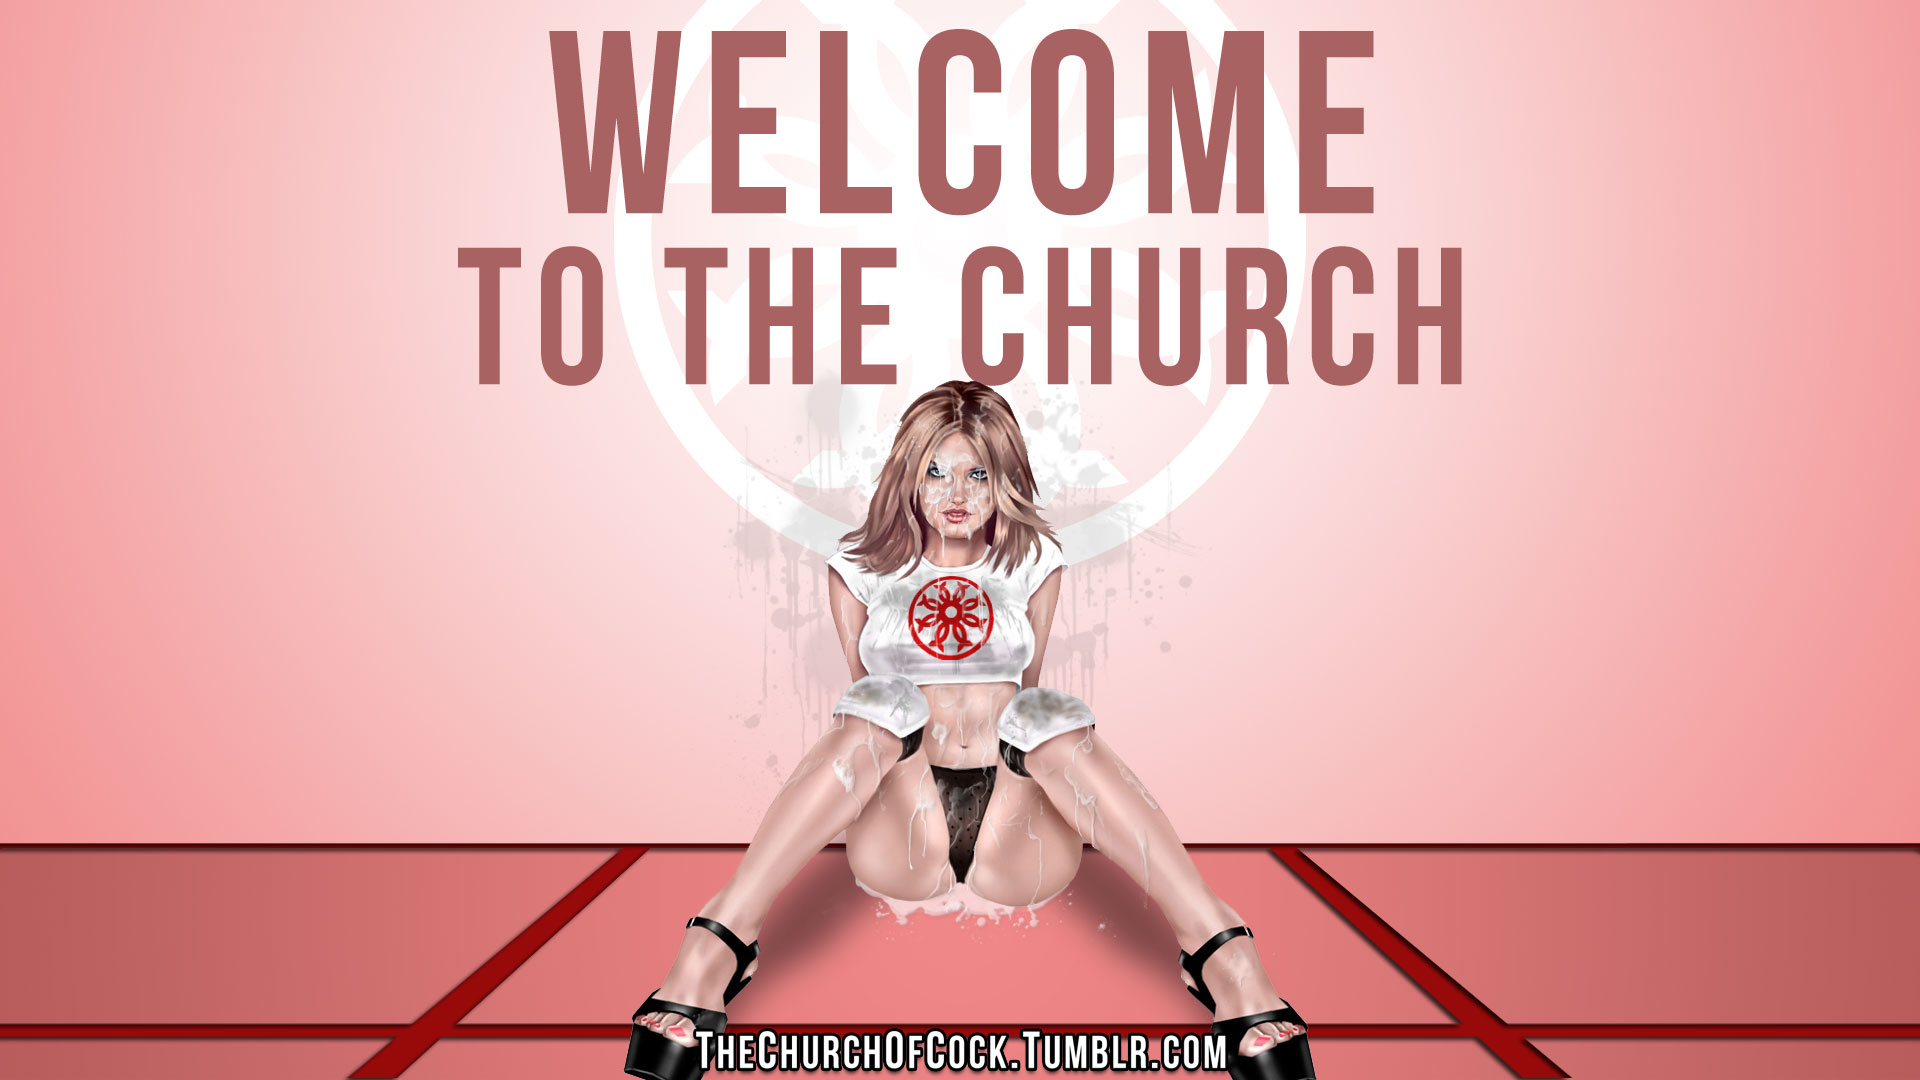 church of cock